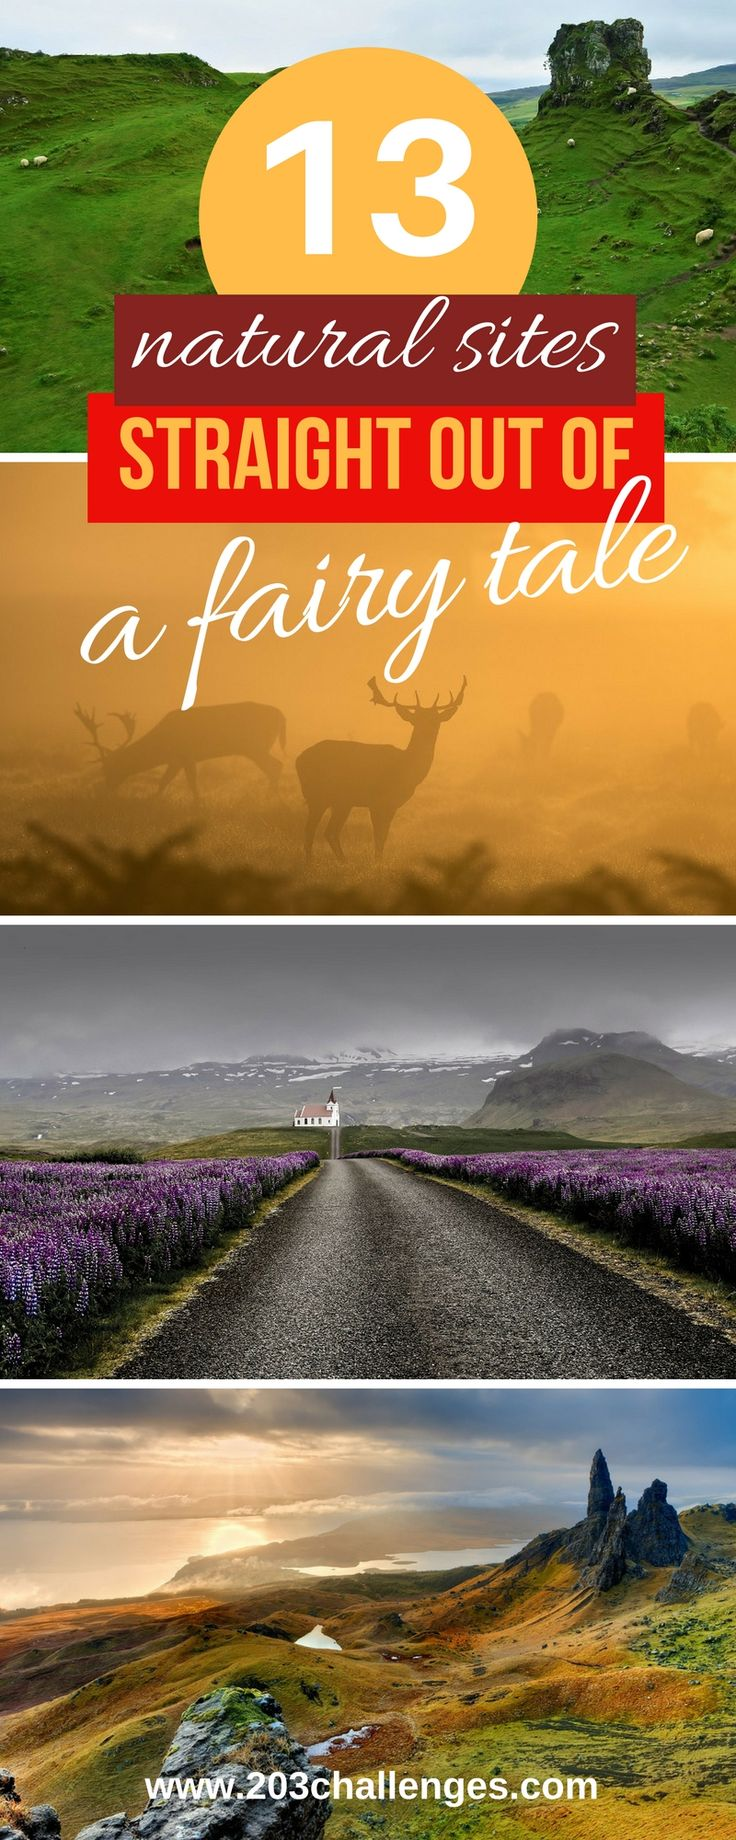 Fairy tales are not only in children's books. Sometimes they can be real places sculpted by nature so as to transfer us to faraway lands of kings, princesses and magic. Here are a few of these magical places as seen from some of the best t